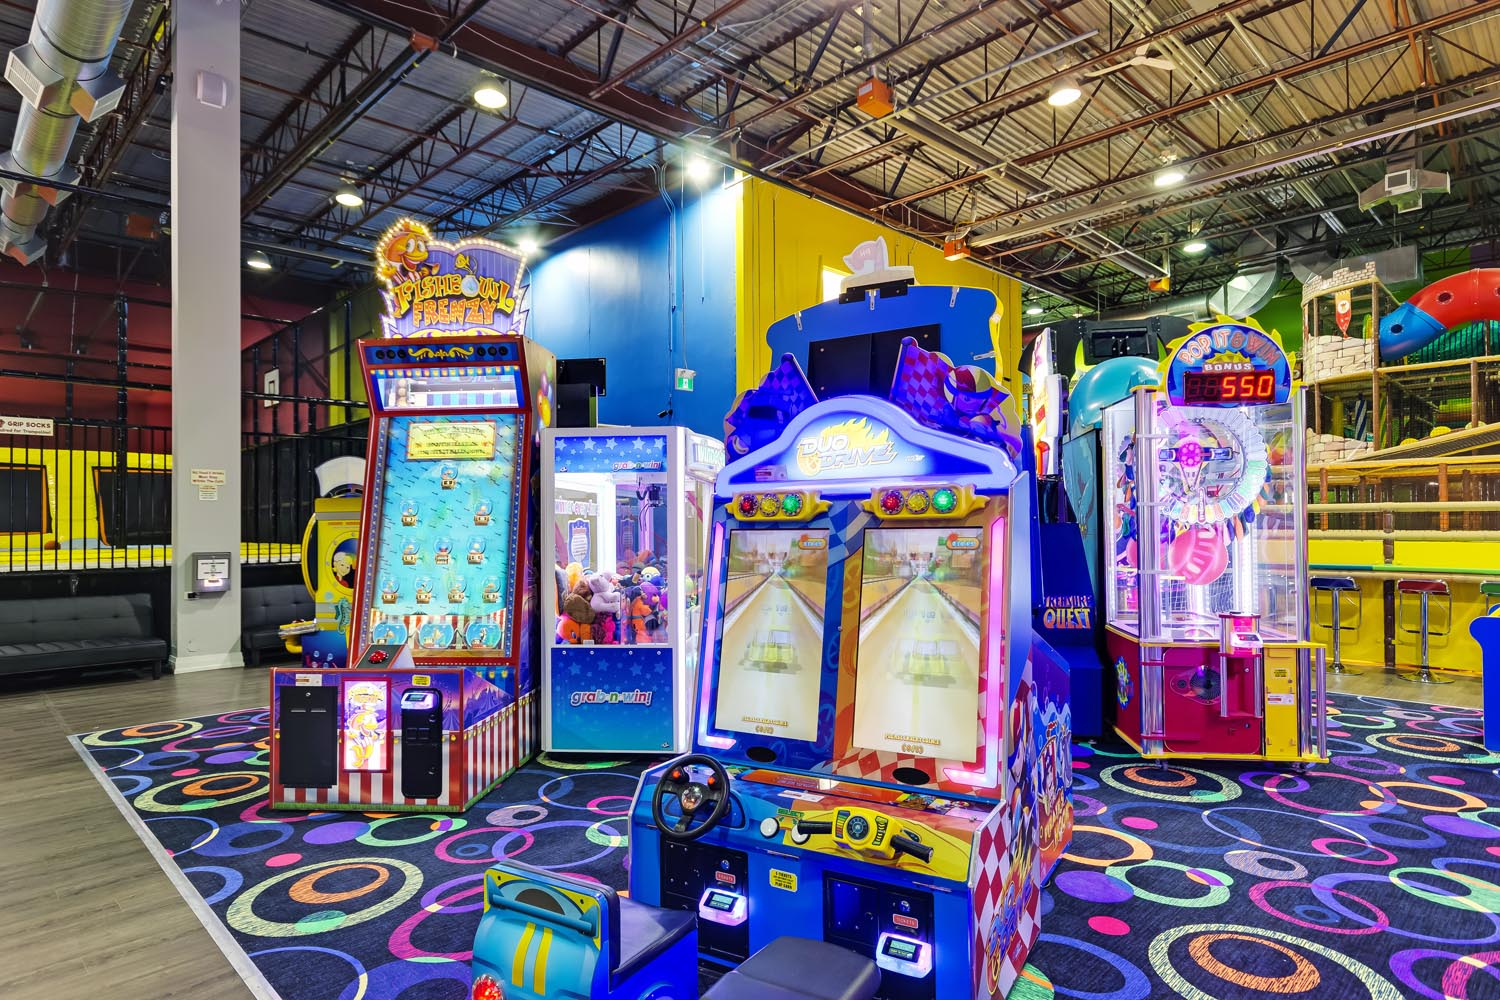 Arcade Games With Loads of Prizes!